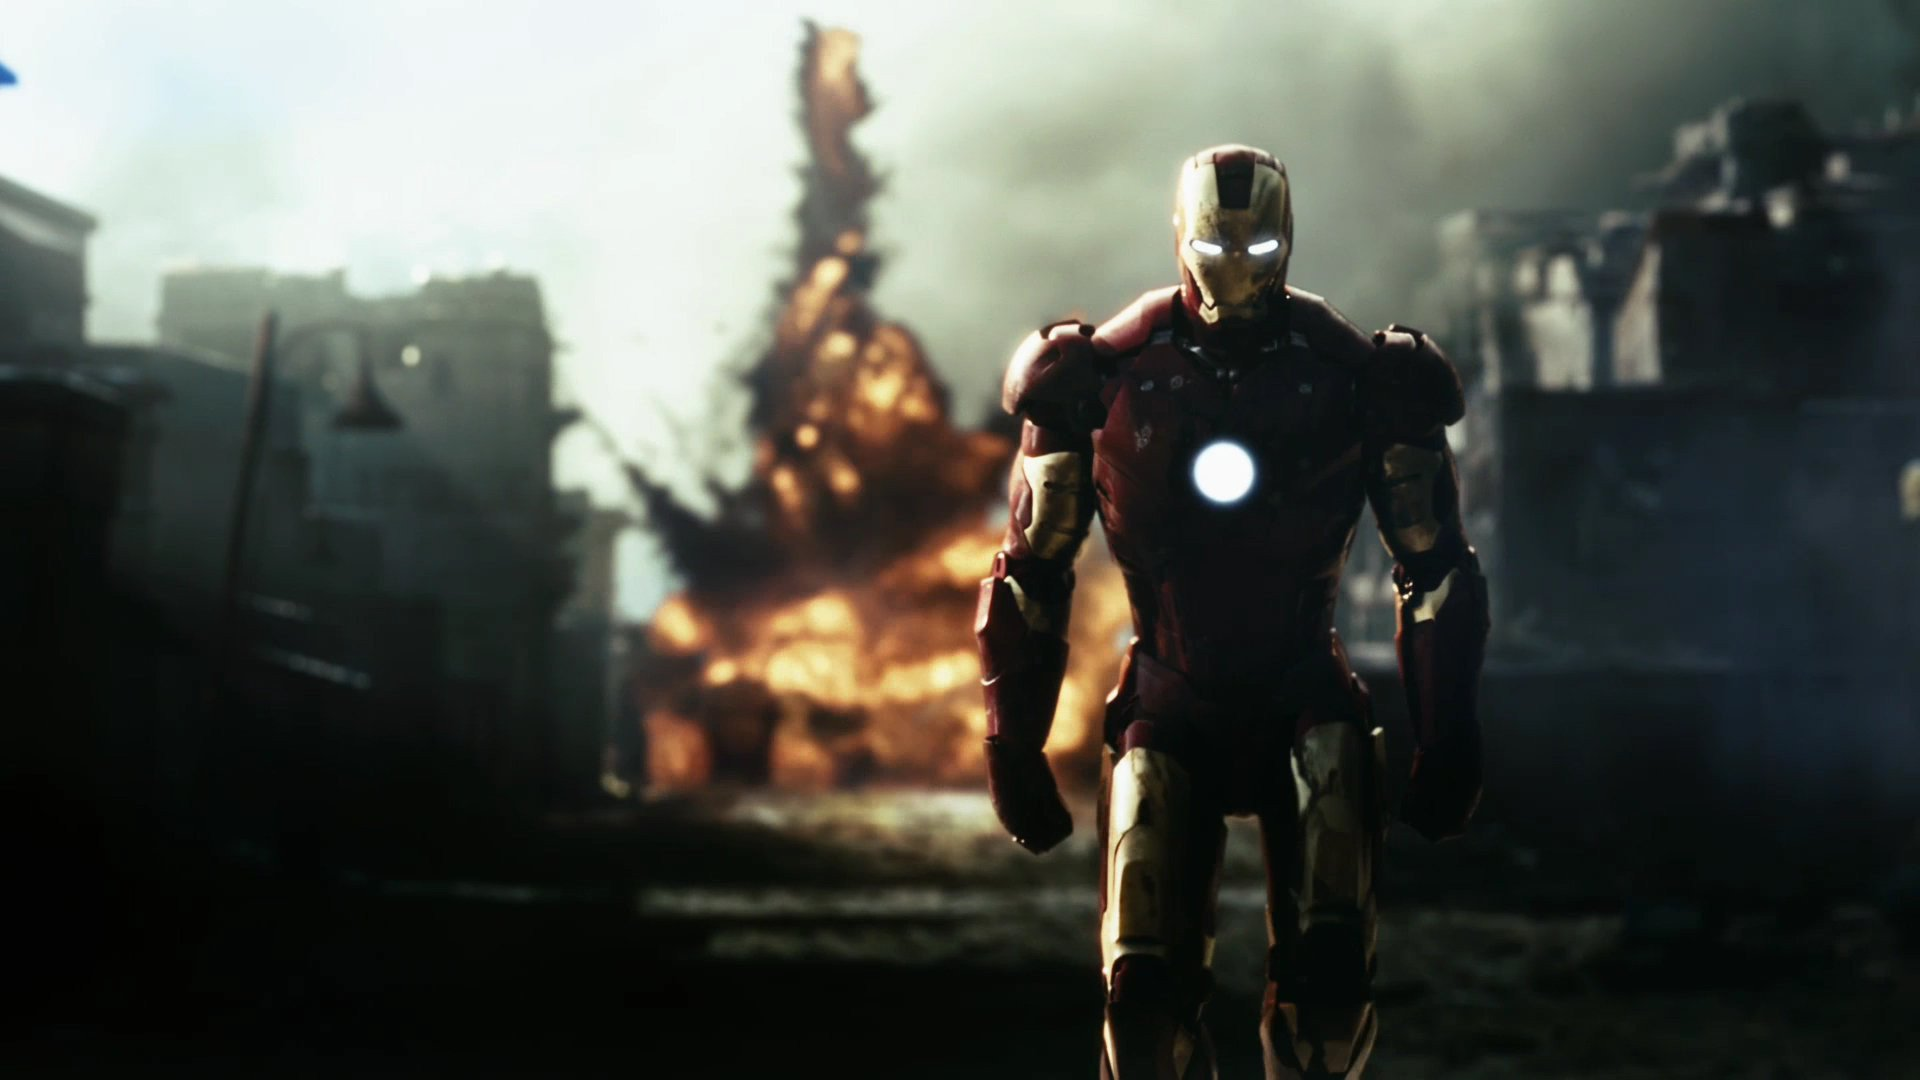 iron man 3 games free download for pc windows 8